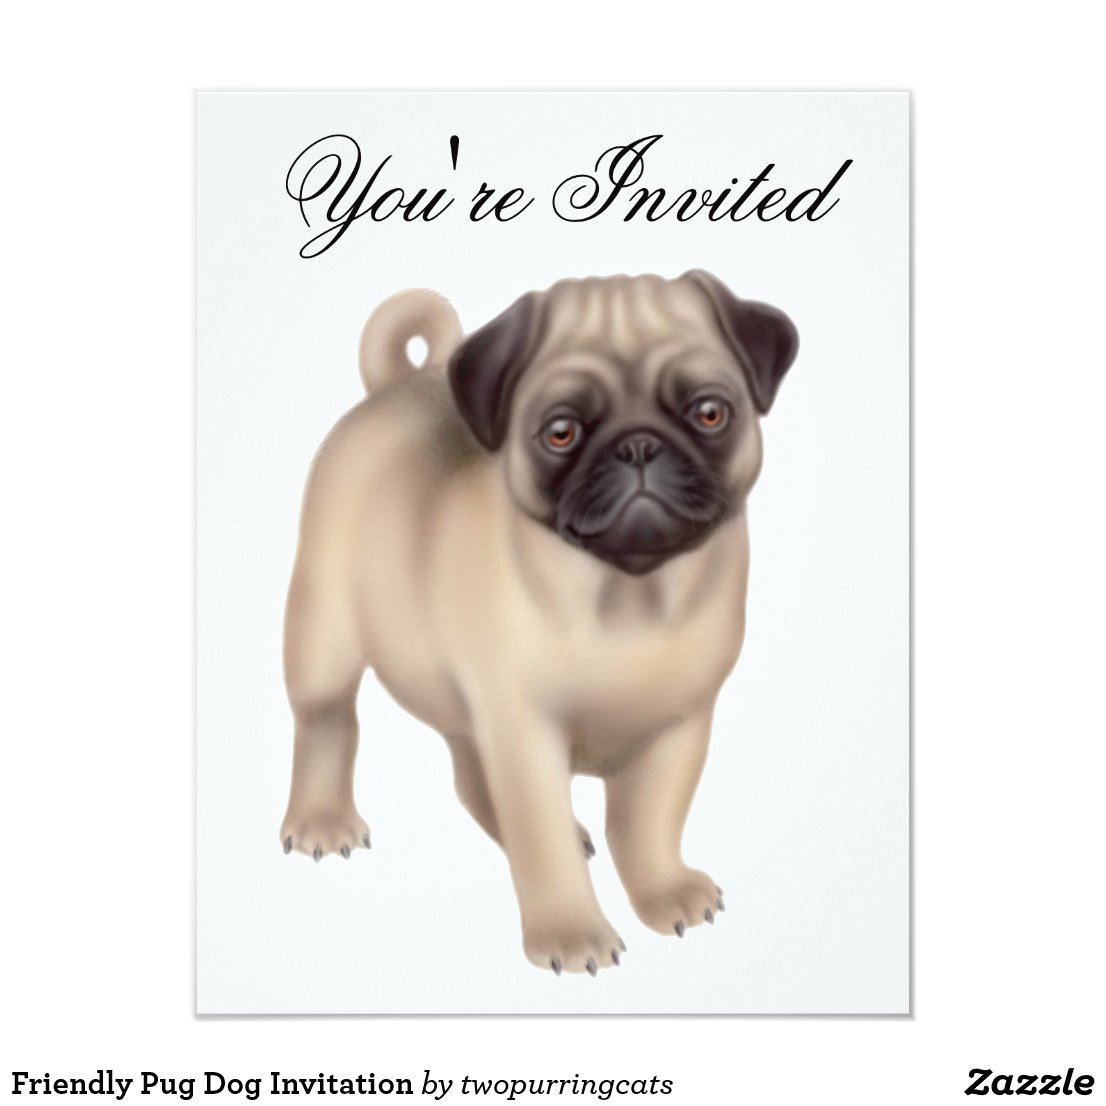 Friendly Pug Dog Invitation